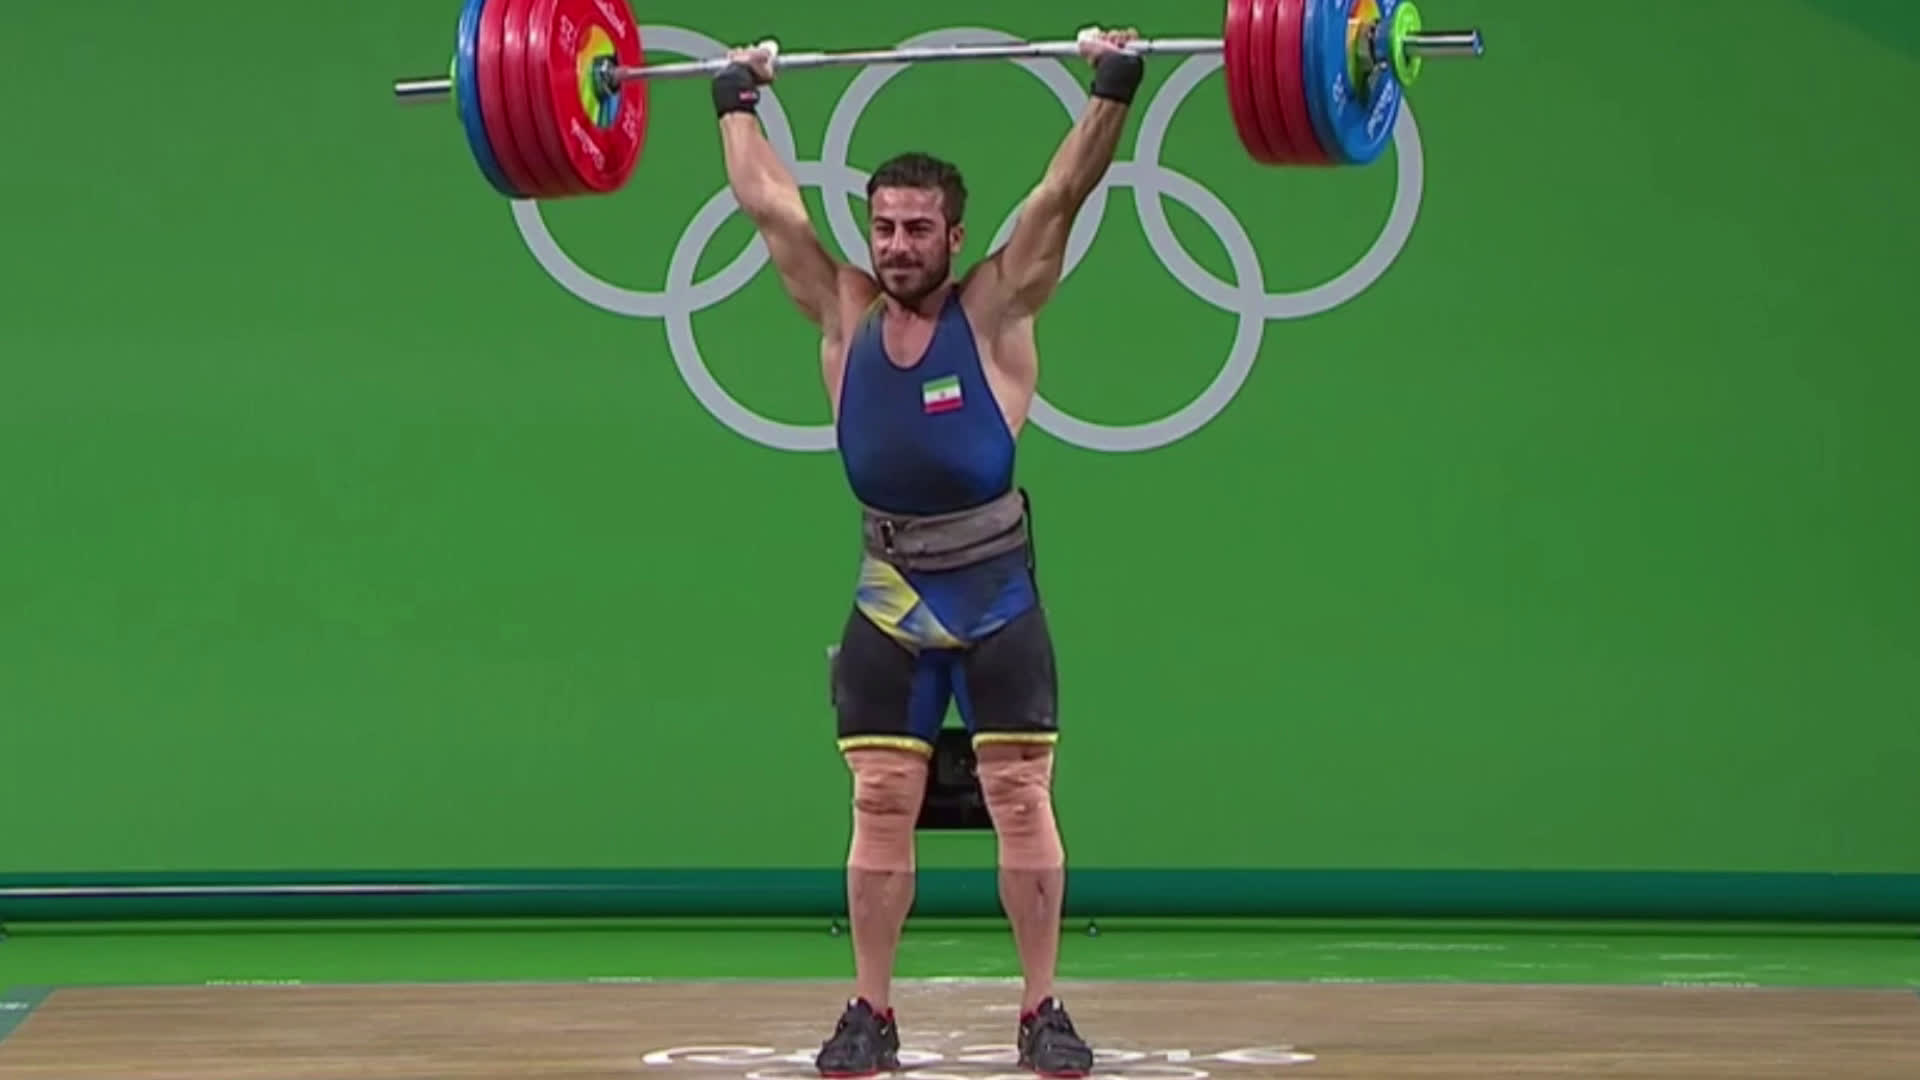 Weightlifting, Denis Ulanov: biography, achievements and interesting facts